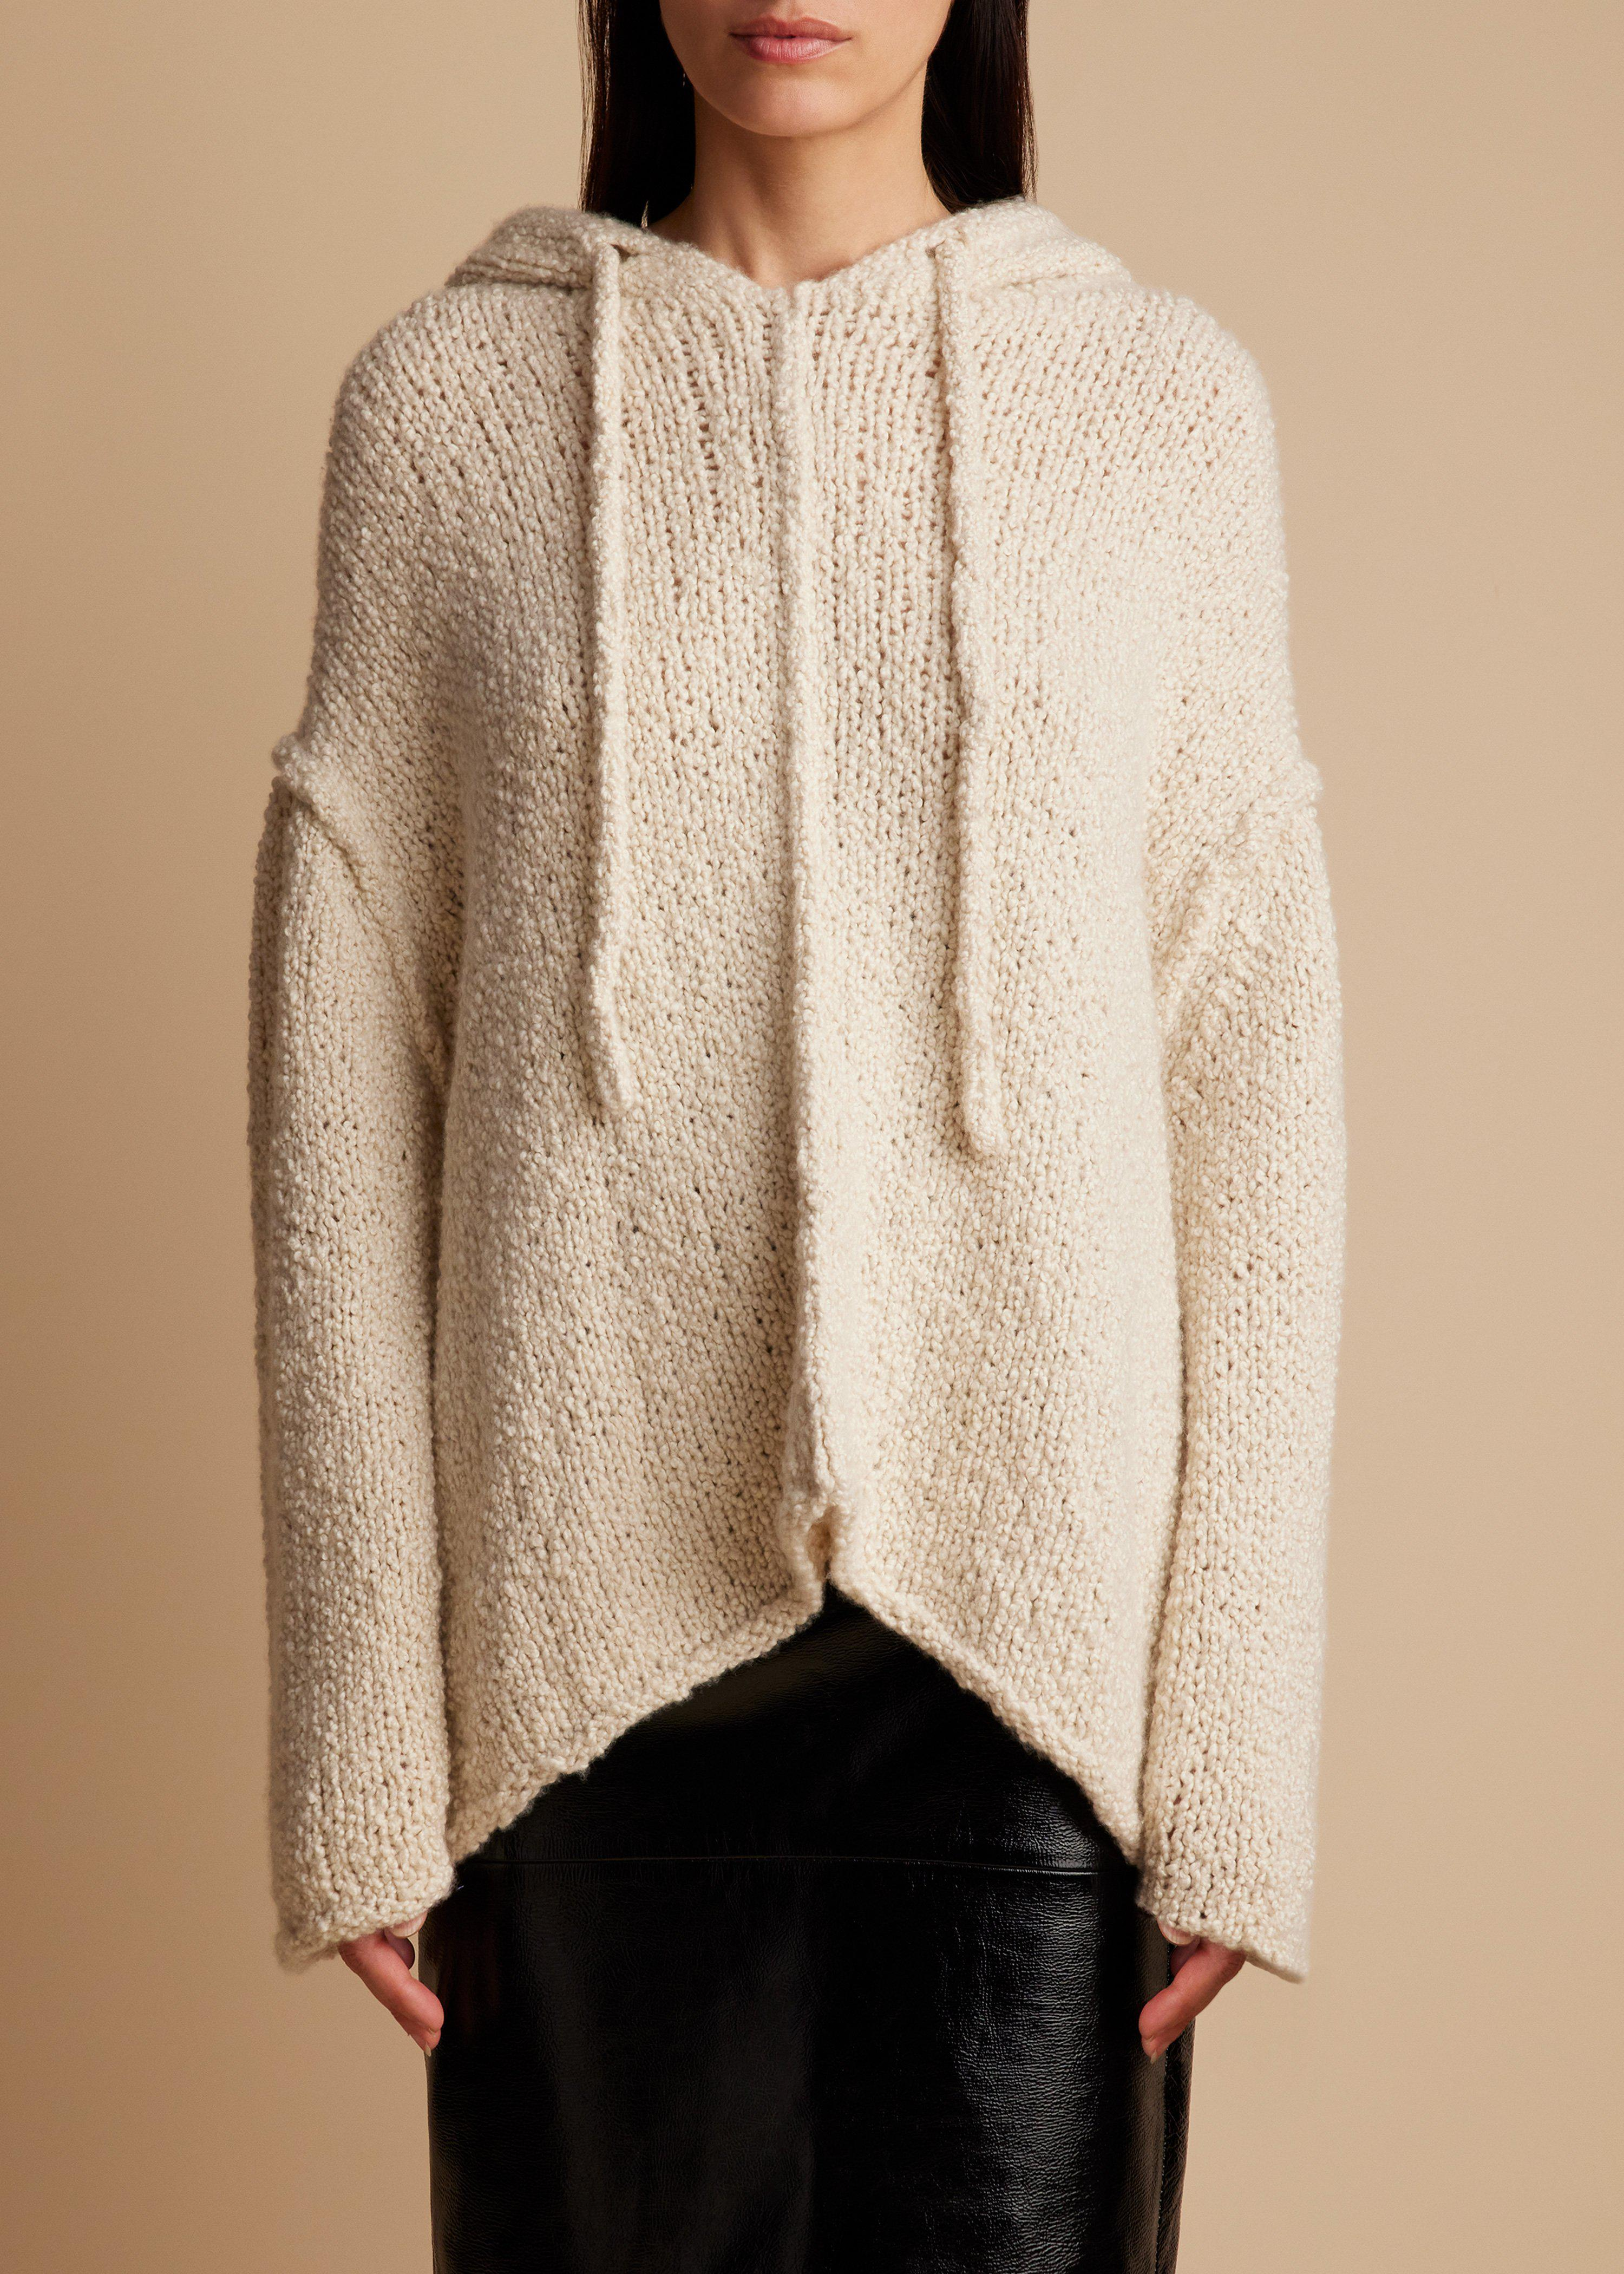 The Sile Hoodie in Ivory